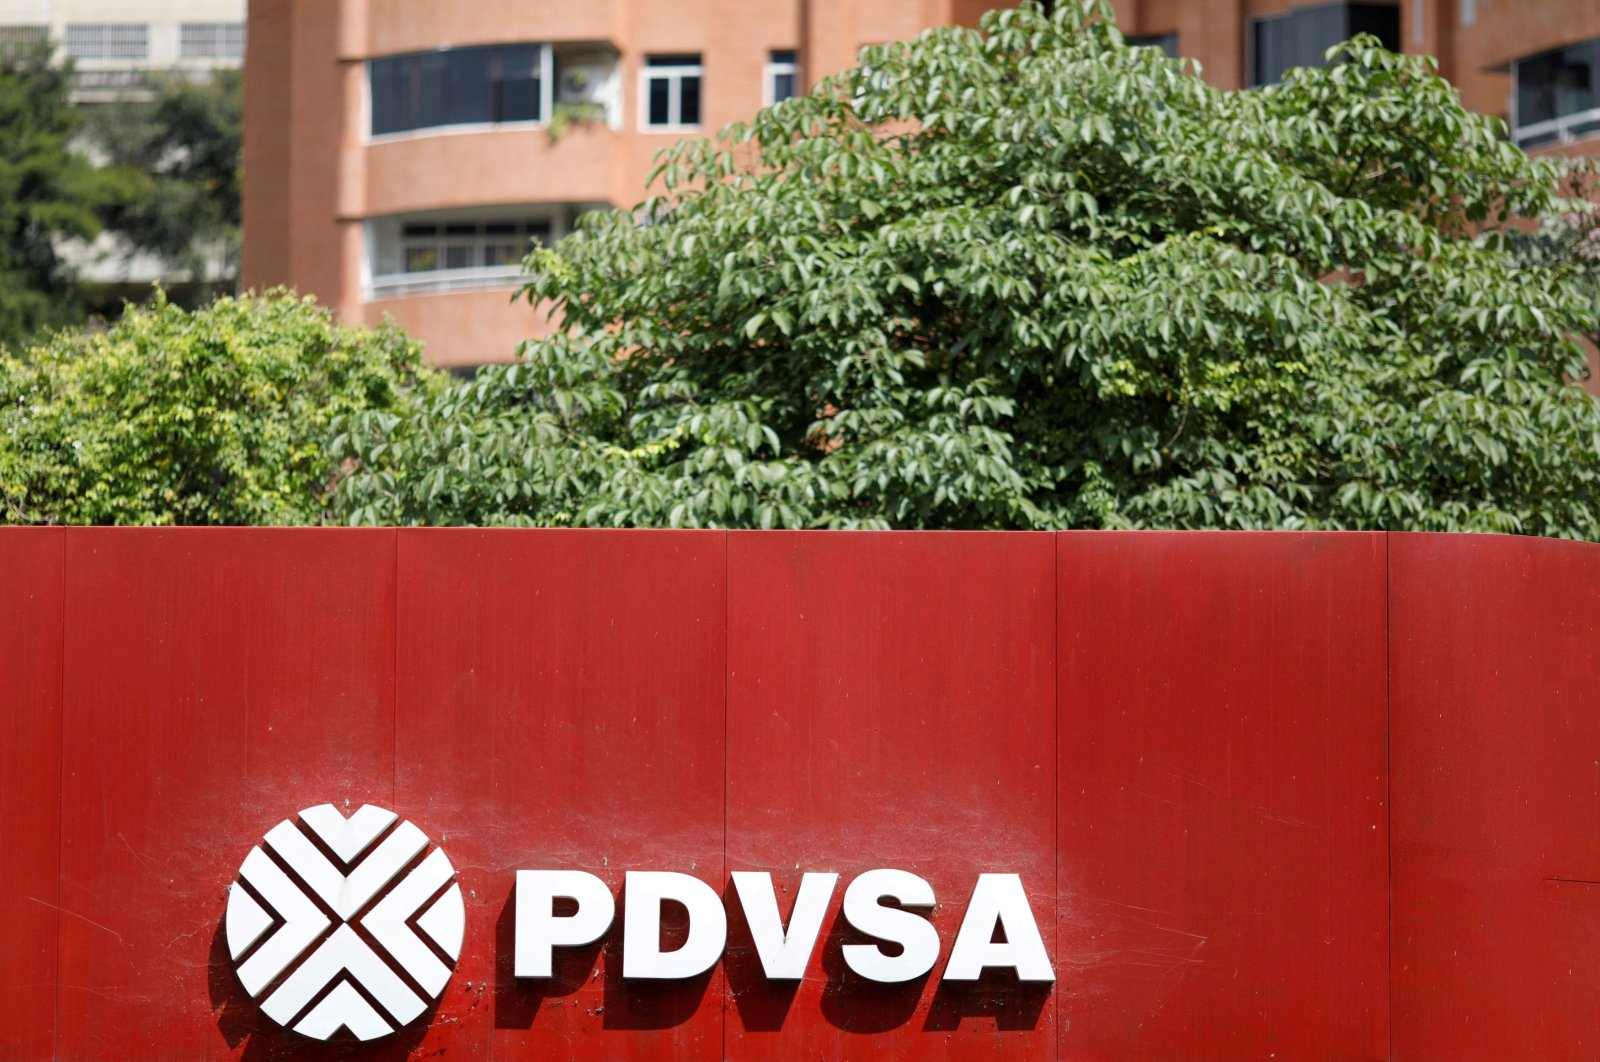 The corporate logo of the state oil company PDVSA is seen at a gas station in Caracas, Venezuela, Nov. 16, 2017. (Reuters Photo)